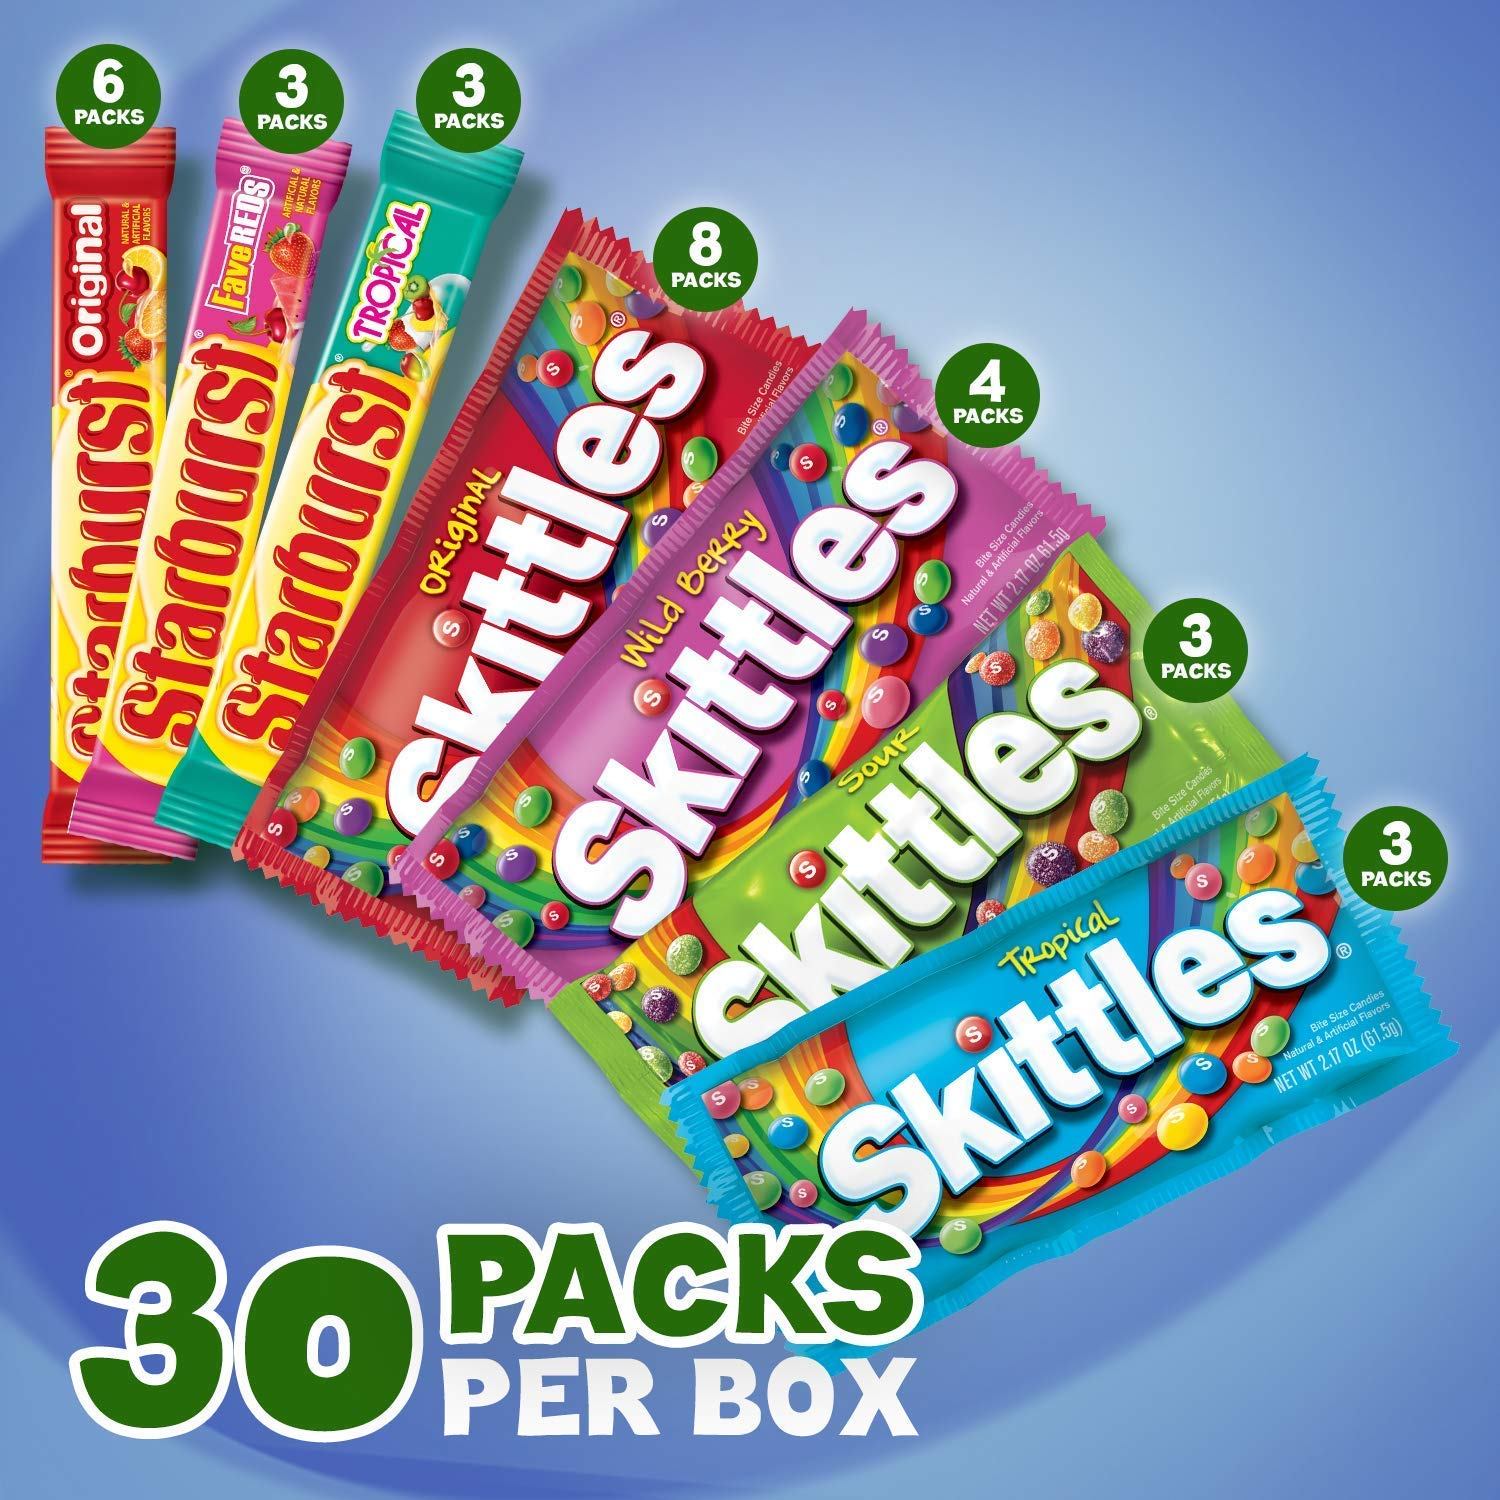 SKITTLES & STARBURST Full Size Candy Variety Mix 55-Count Box (55 Count Box)